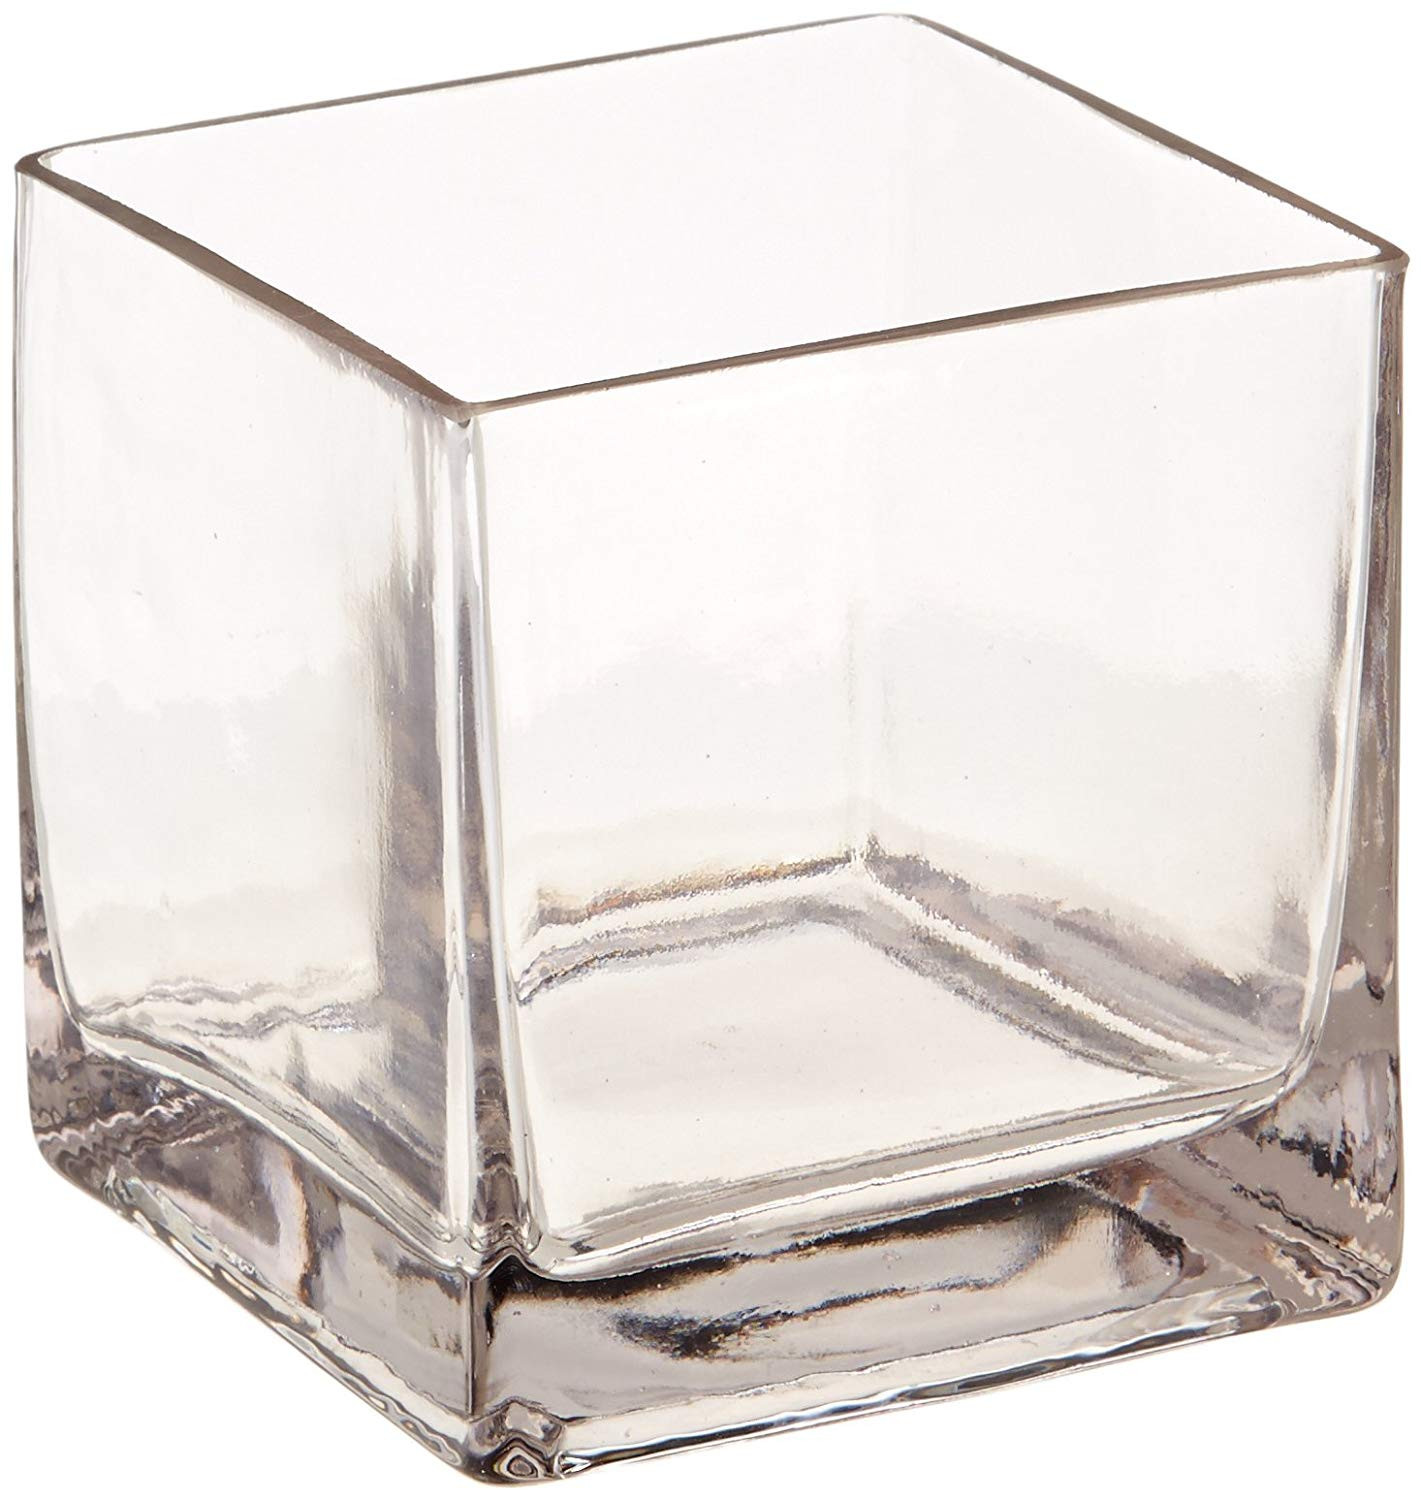 waterford crystal 9 inch vase of amazon com 12piece 4 square crystal clear glass vase home kitchen intended for 71 jezfmvnl sl1500